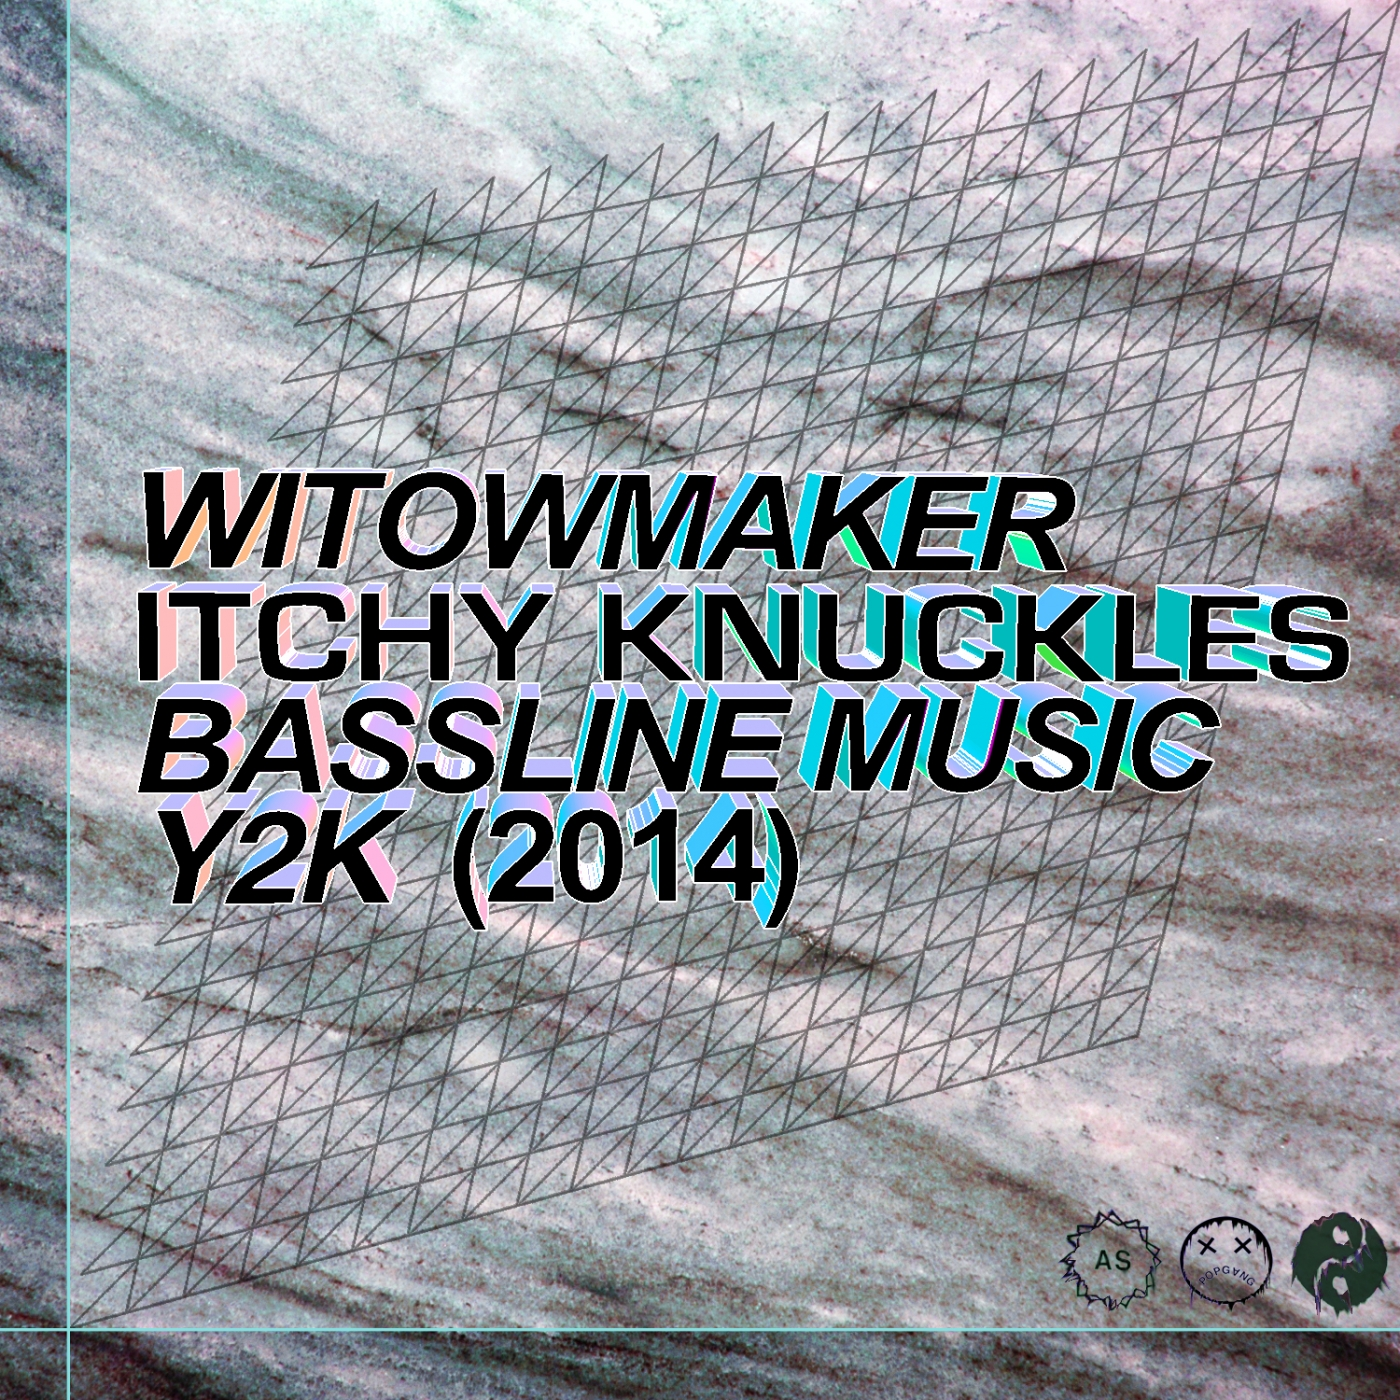 WITOWMAKER - ITCHY KNUCKLES BASSLINE MUSIC Y2K (2014-2015)